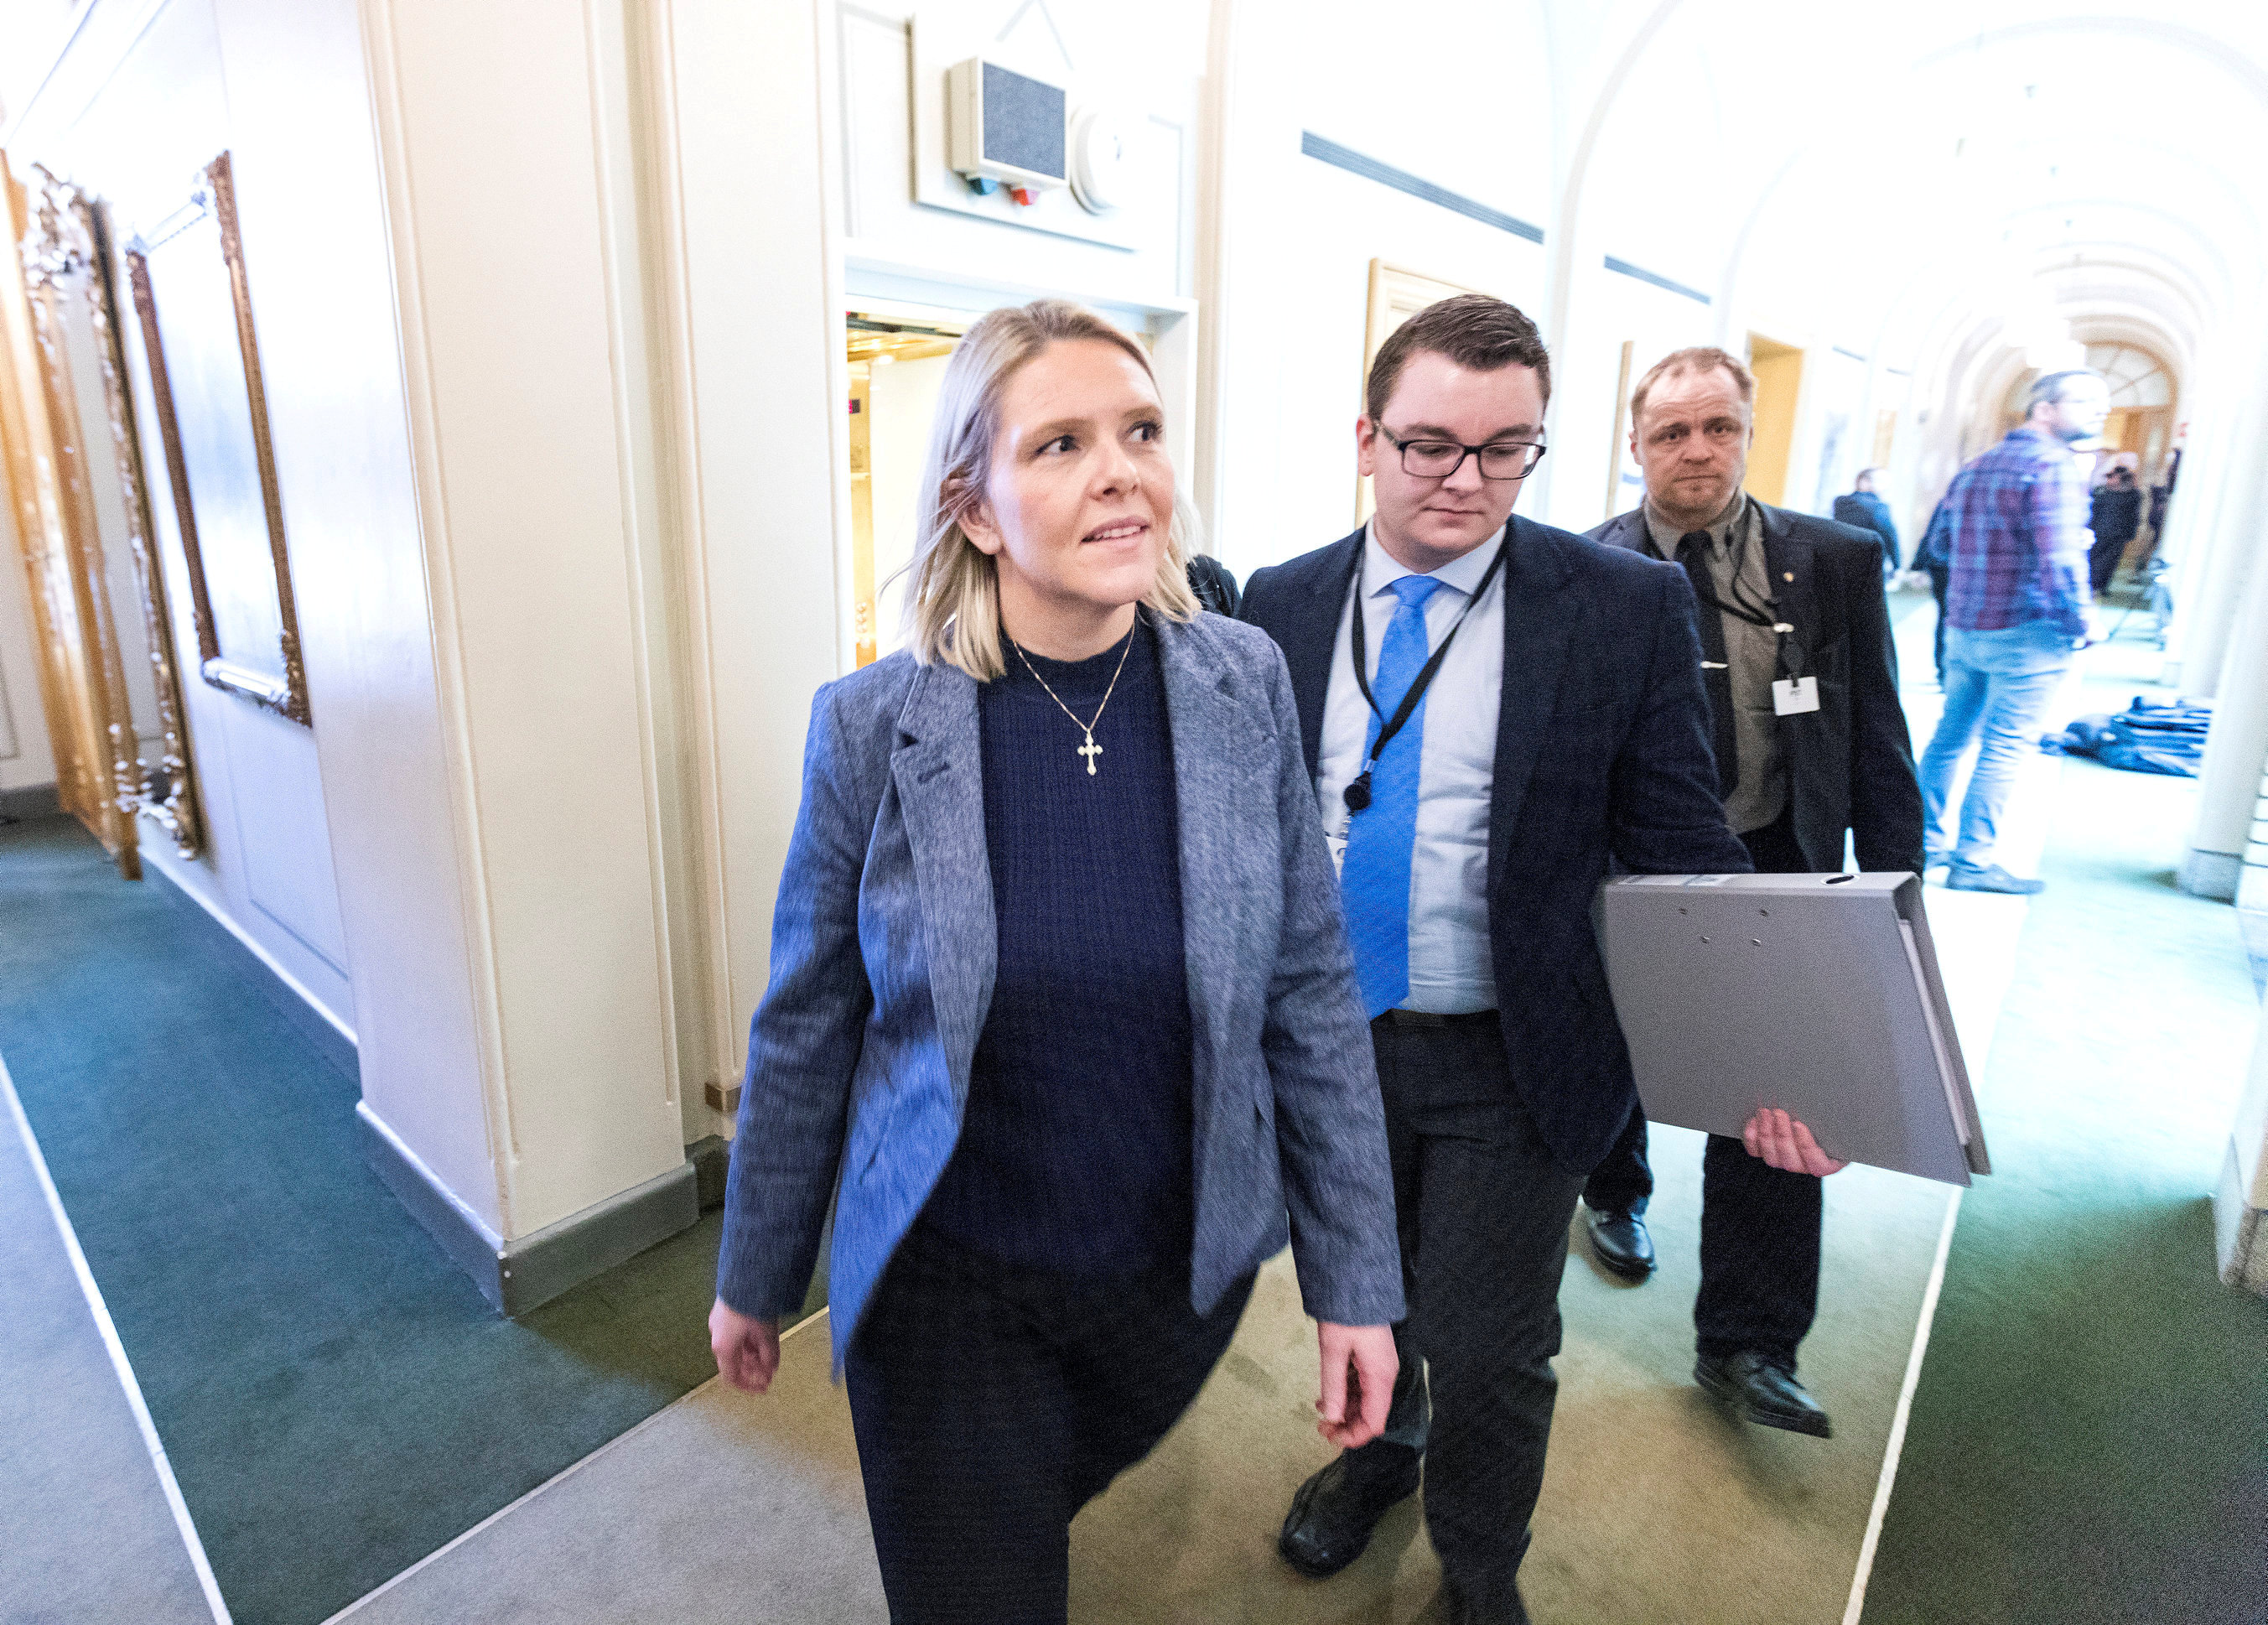 Norway's Justice Minister Sylvi Listhaug and her political adviser Espen Teigen are seen in the Norwegian parlament after several parties supported a motion of no-confidence against her in Oslo, Norway March 15, 2018. NTB Scanpix/Gorm Kallestad via REUTERS